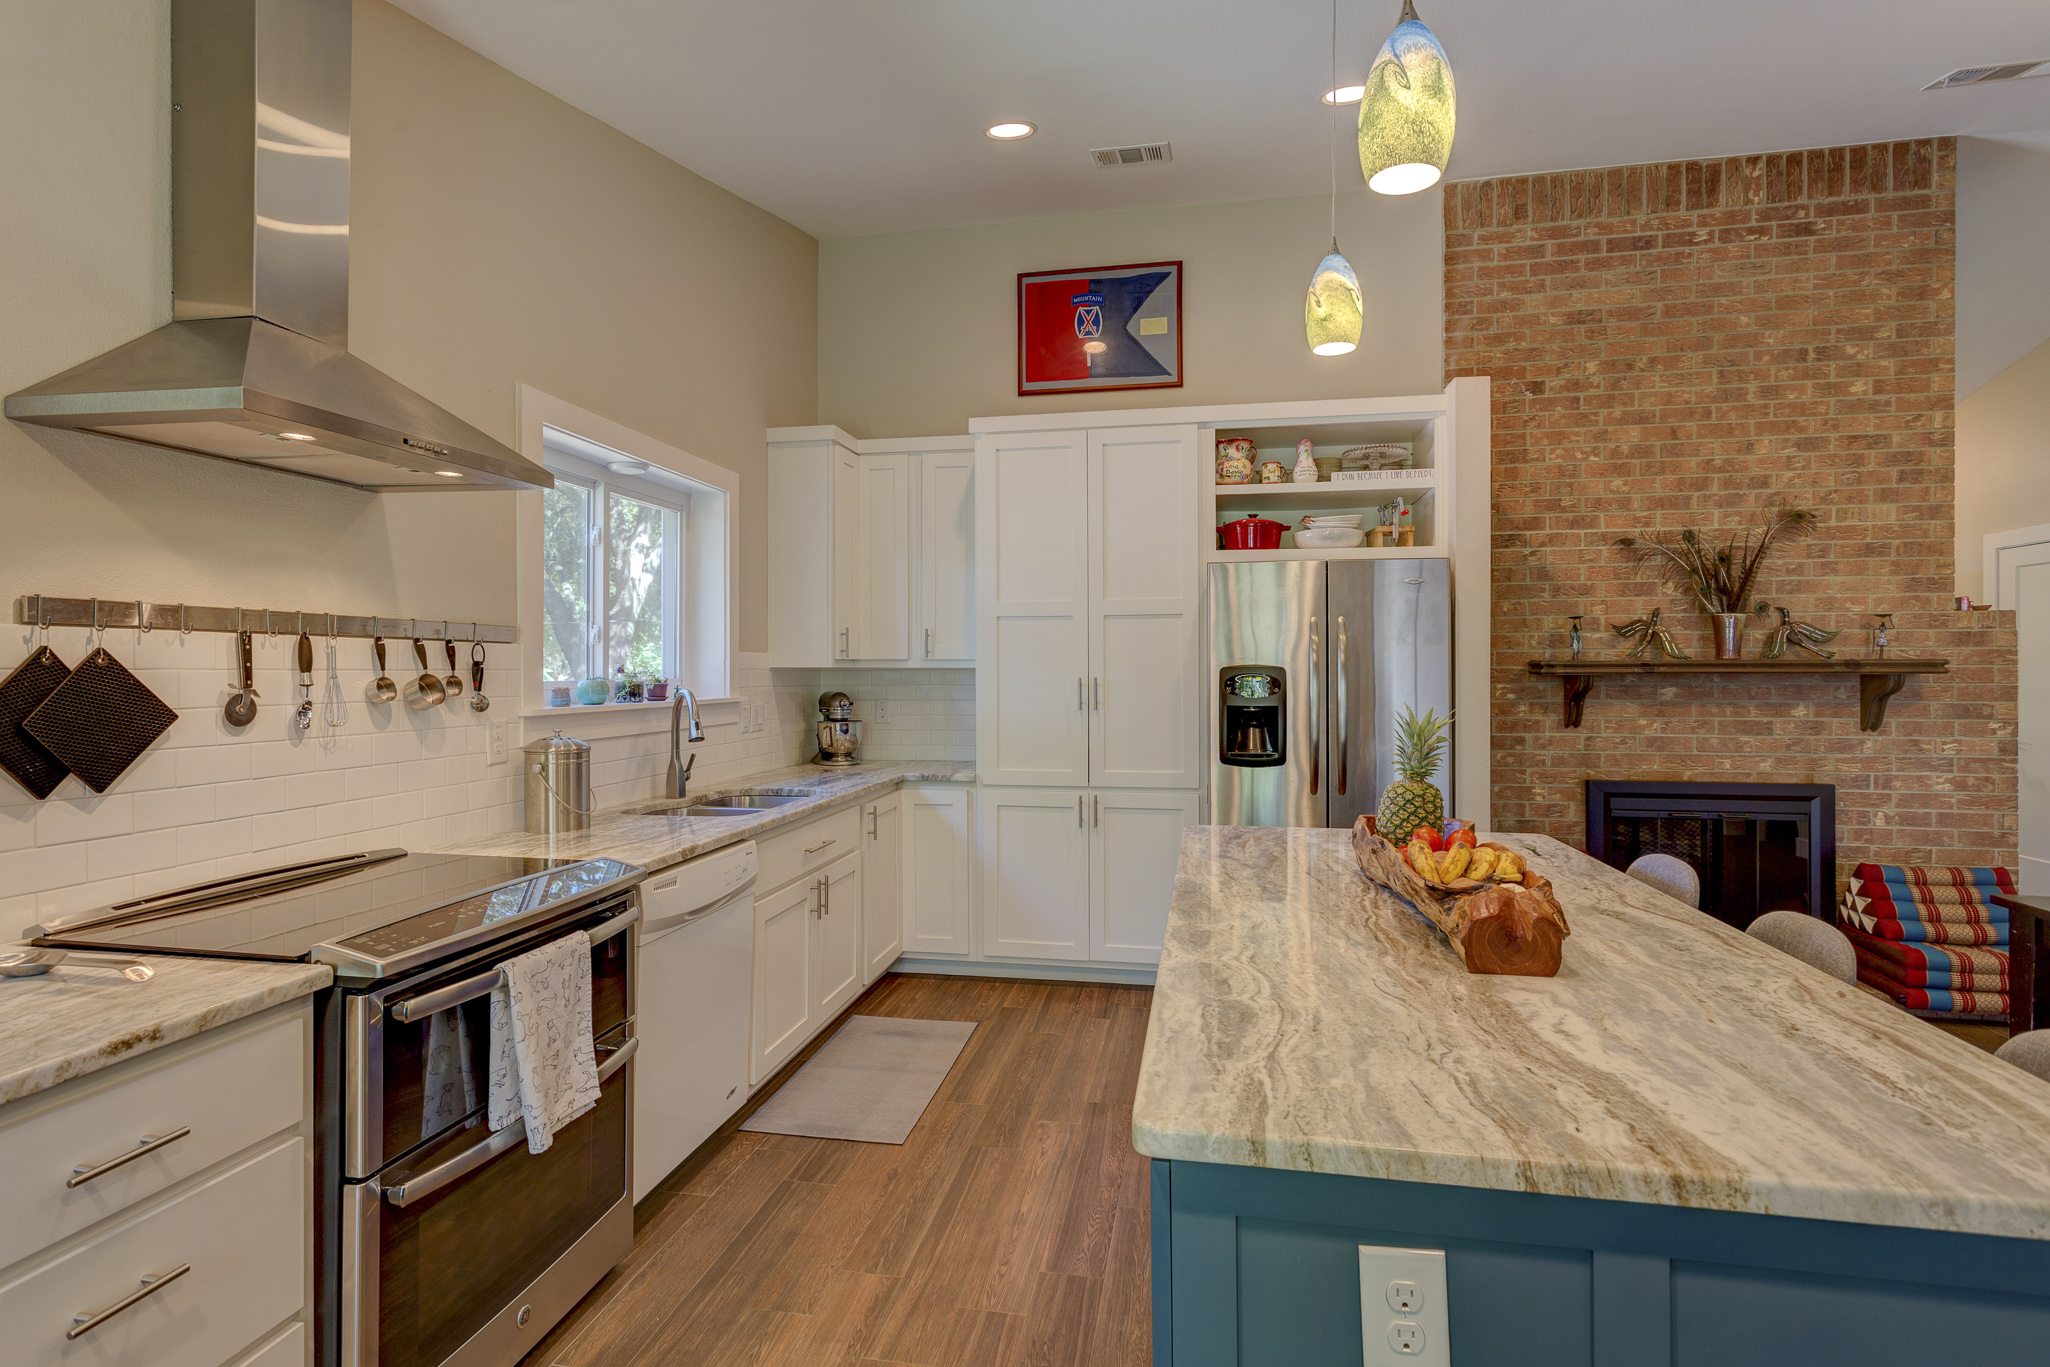 LIGHT & MODERN TEXAS REMODEL - Finding More Space for an Energetic Family